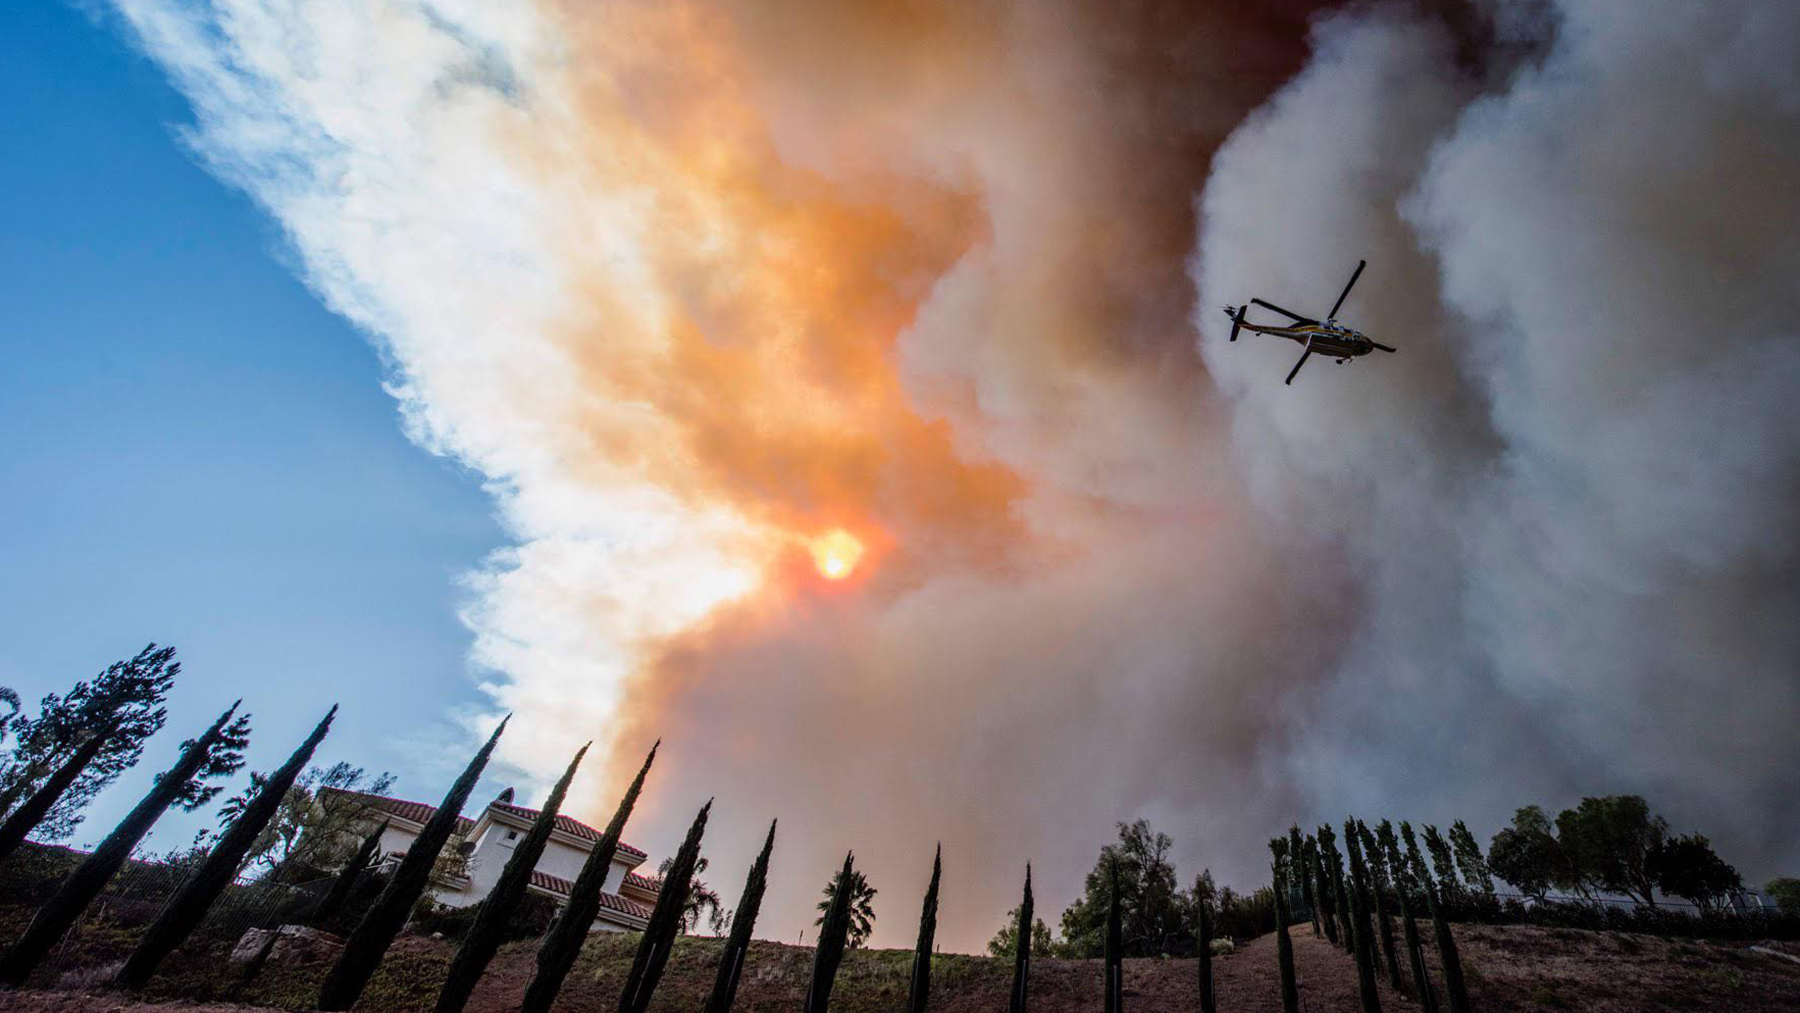 California has registered 17 major disaster declarations since 2014, doubling in rate from previous years. The Woolsey Fire, pictured here, was one such disaster, and the state is working to coordinate with nonprofits and technology companies to better respond to crisis. (Photo courtesy of Erick Madrid)